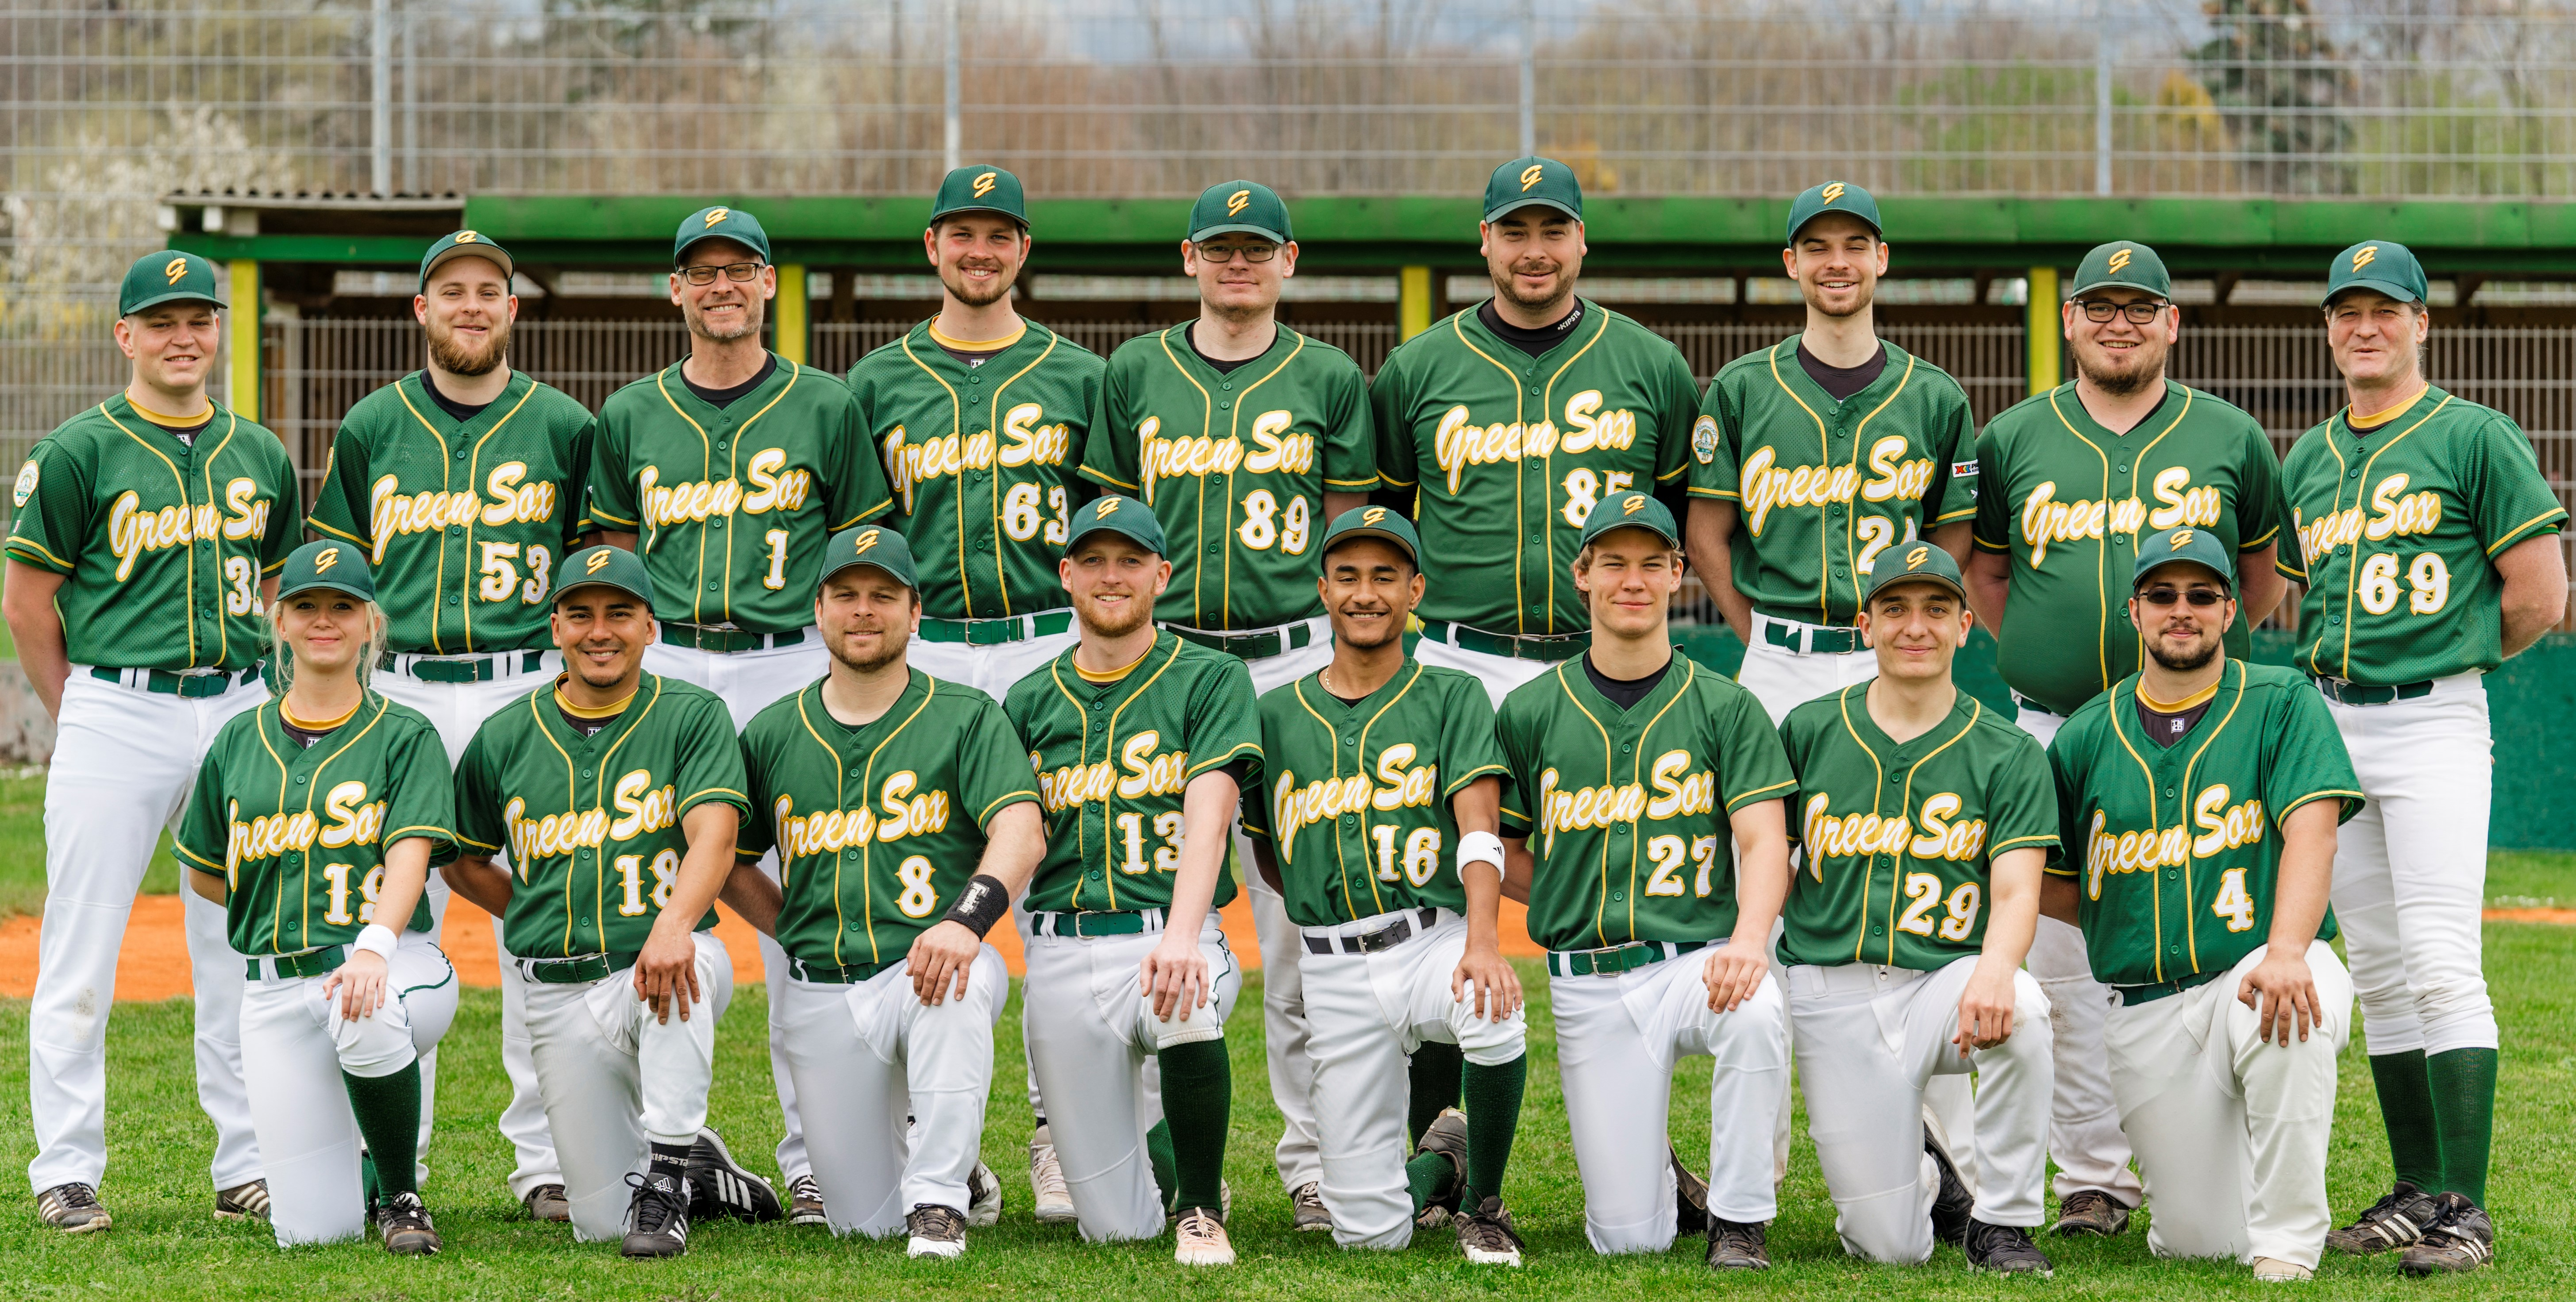 Greensox-6.jpg